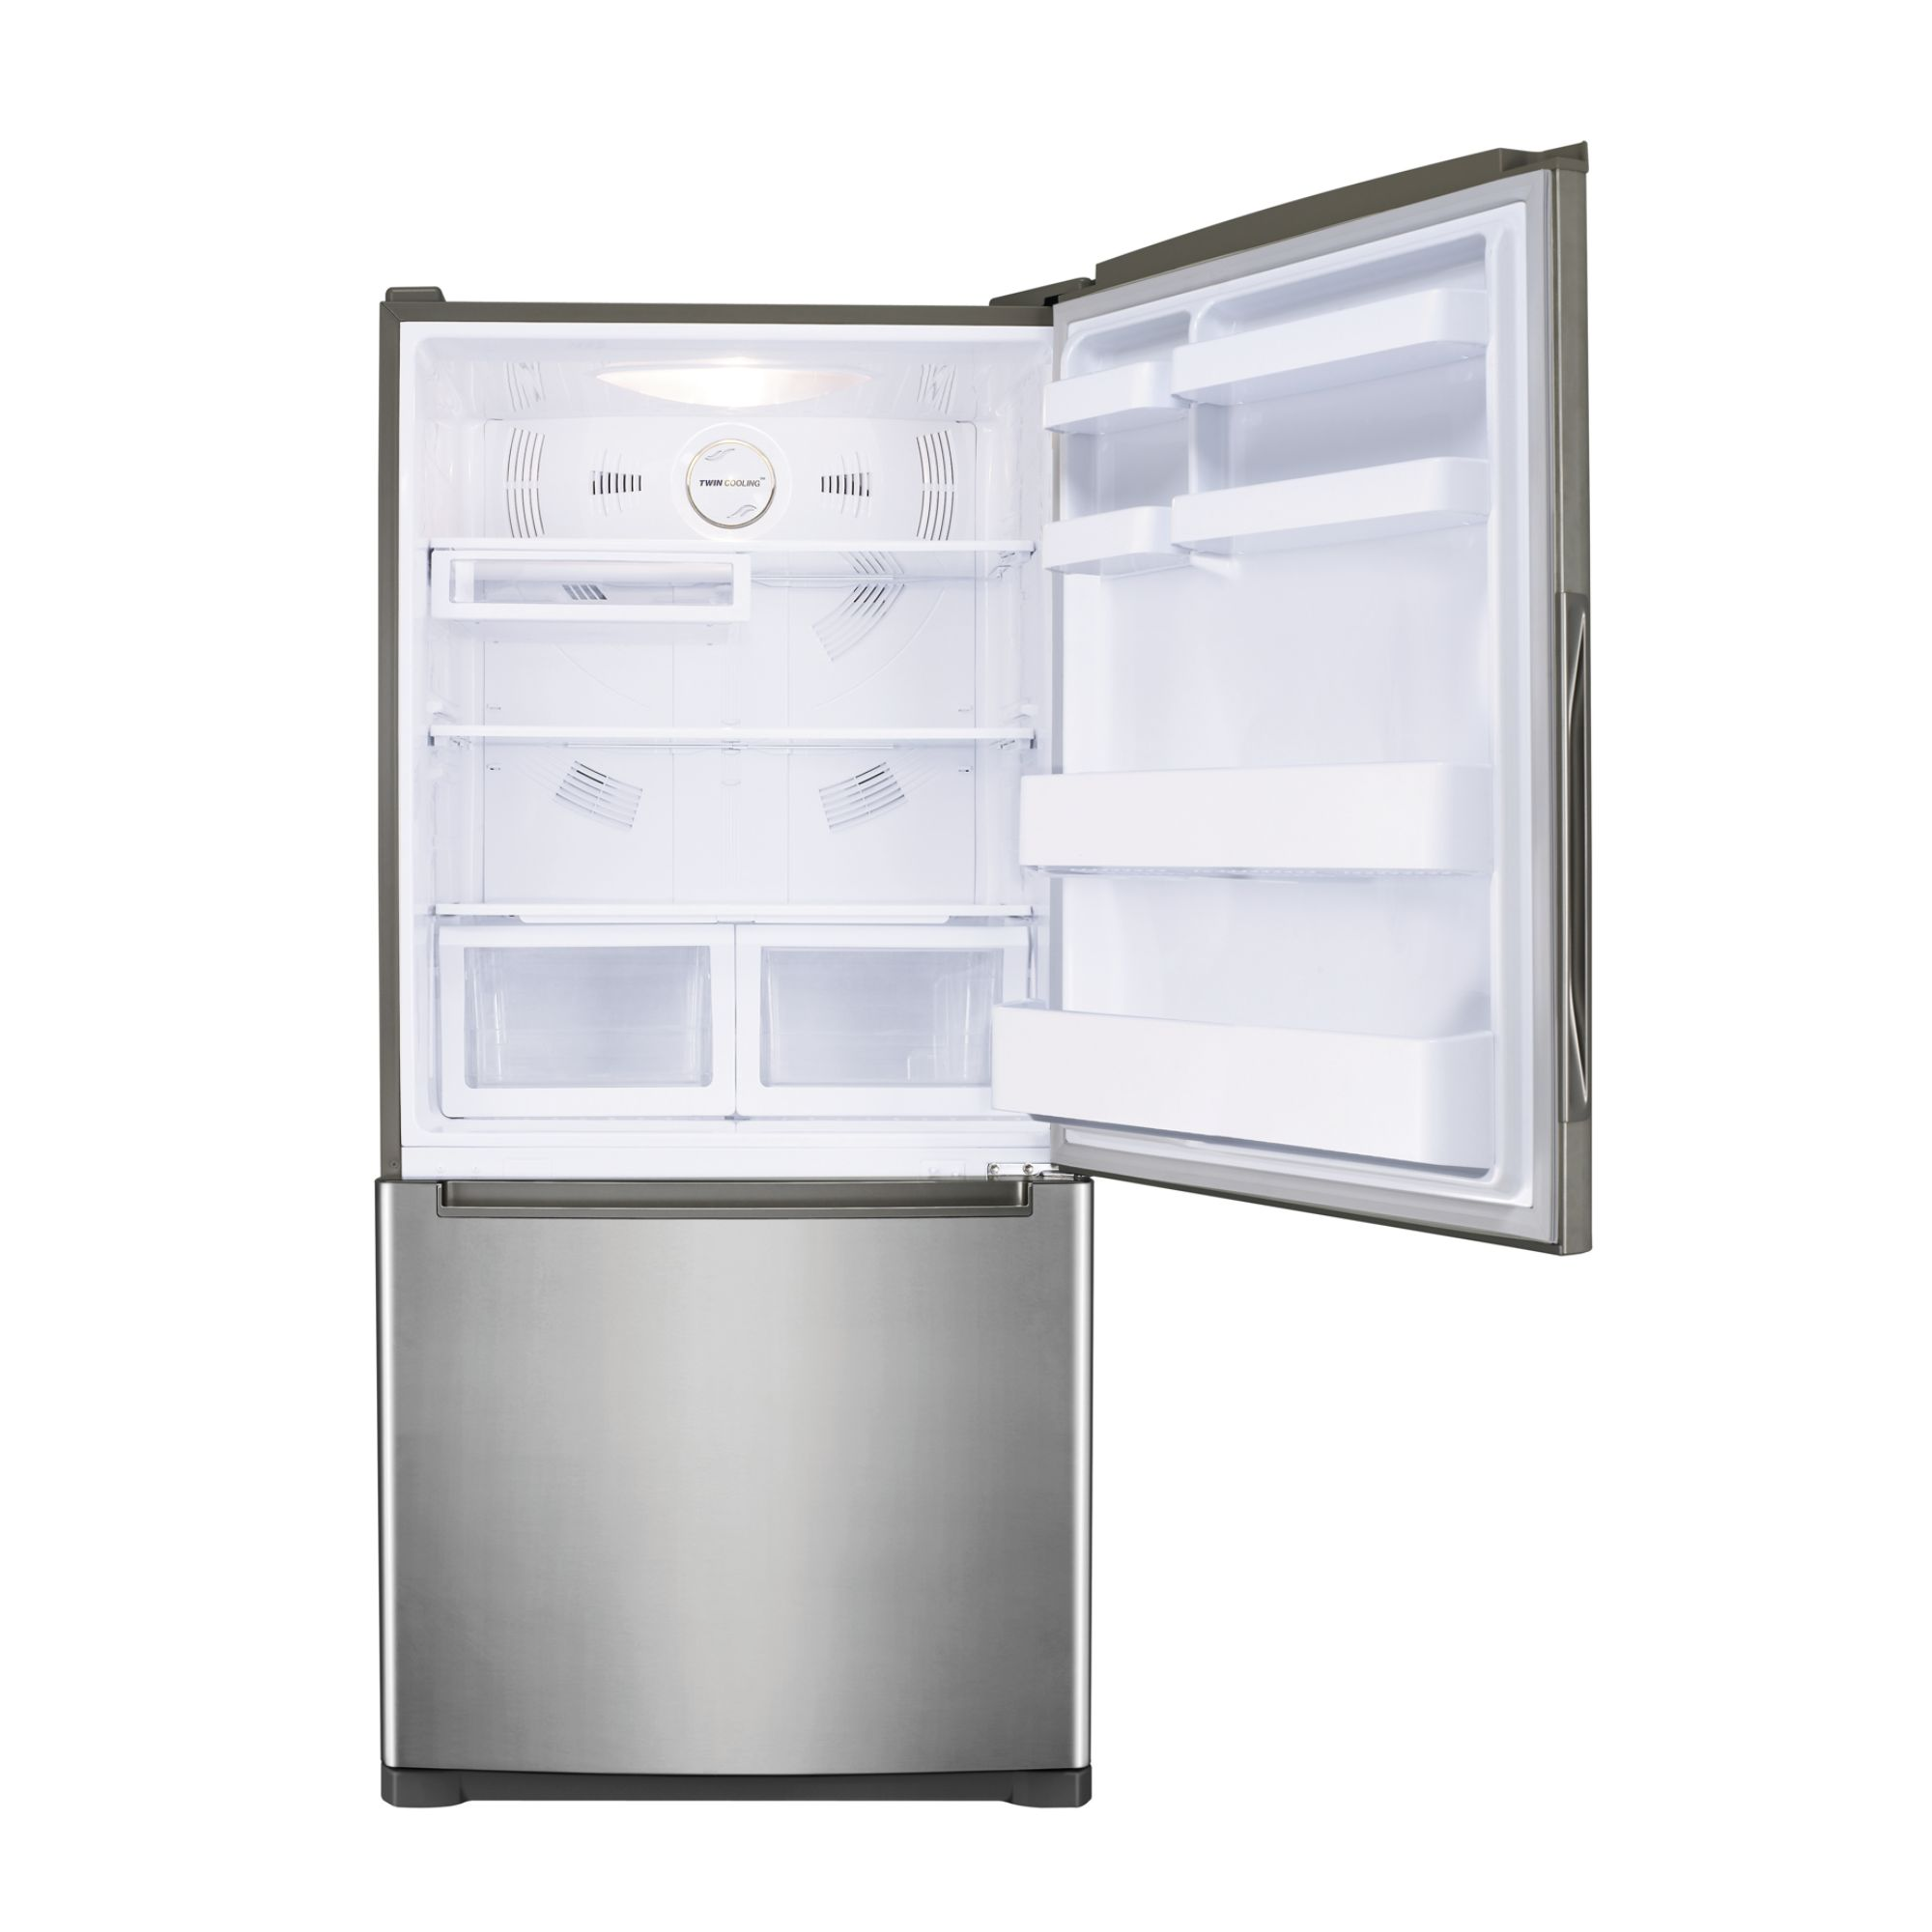 Samsung 20 cu. ft. Bottom Freezer with Side Swing Freezer Door - Stainless Platinum